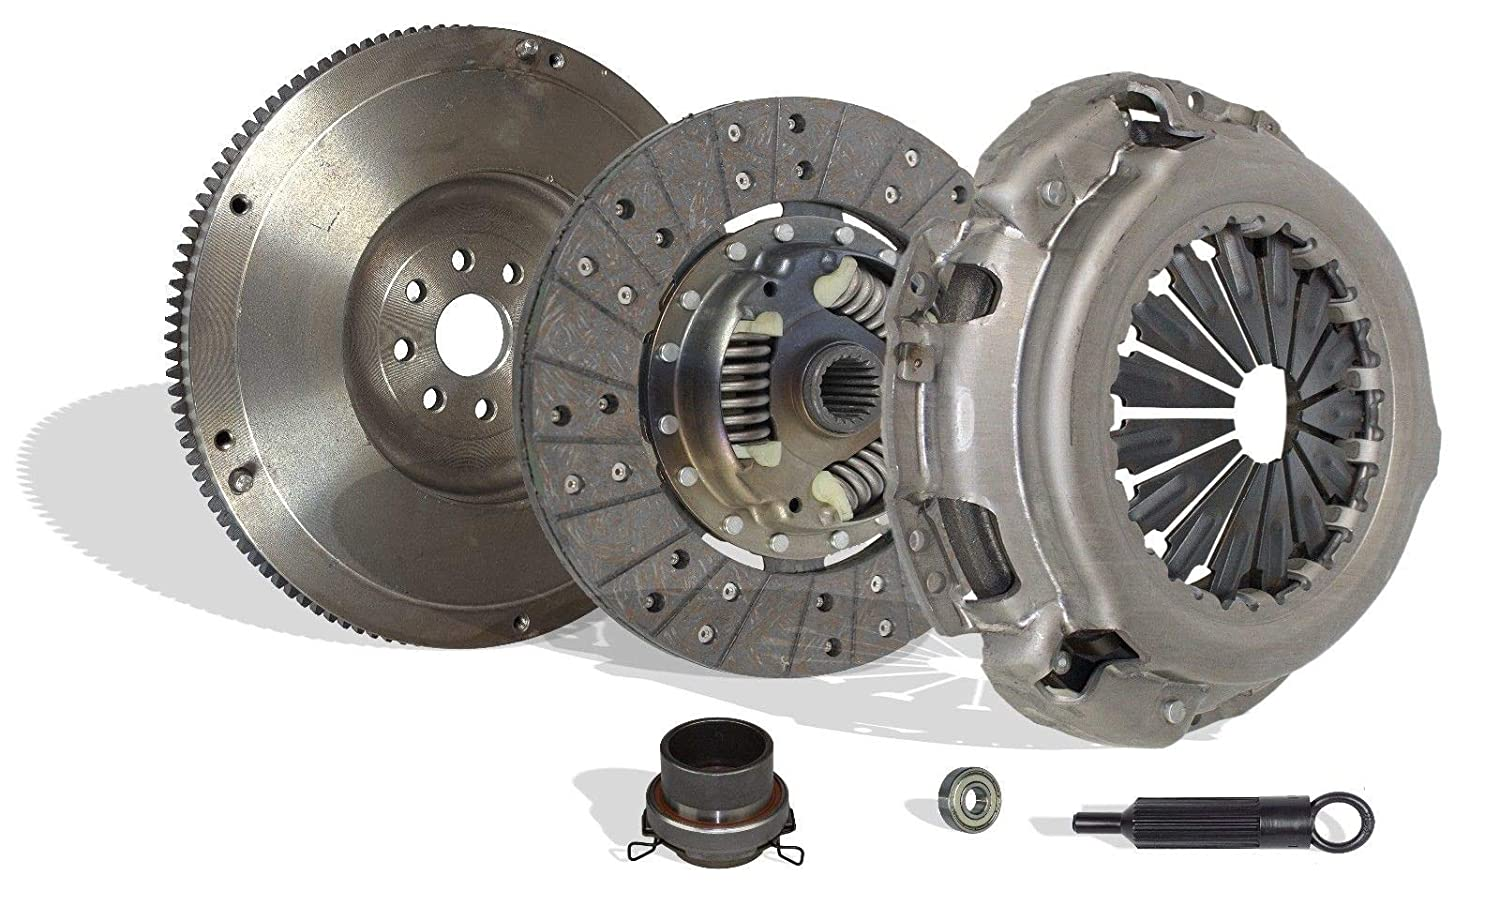 Clutch With Flywheel Kit Works With Toyota Tundra T100 Tacoma 4Runner Base Pre Runner Sr5 Dlx S-runner Limited 1995-2004 3.4L 3378CC V6 GAS DOHC Naturally ...